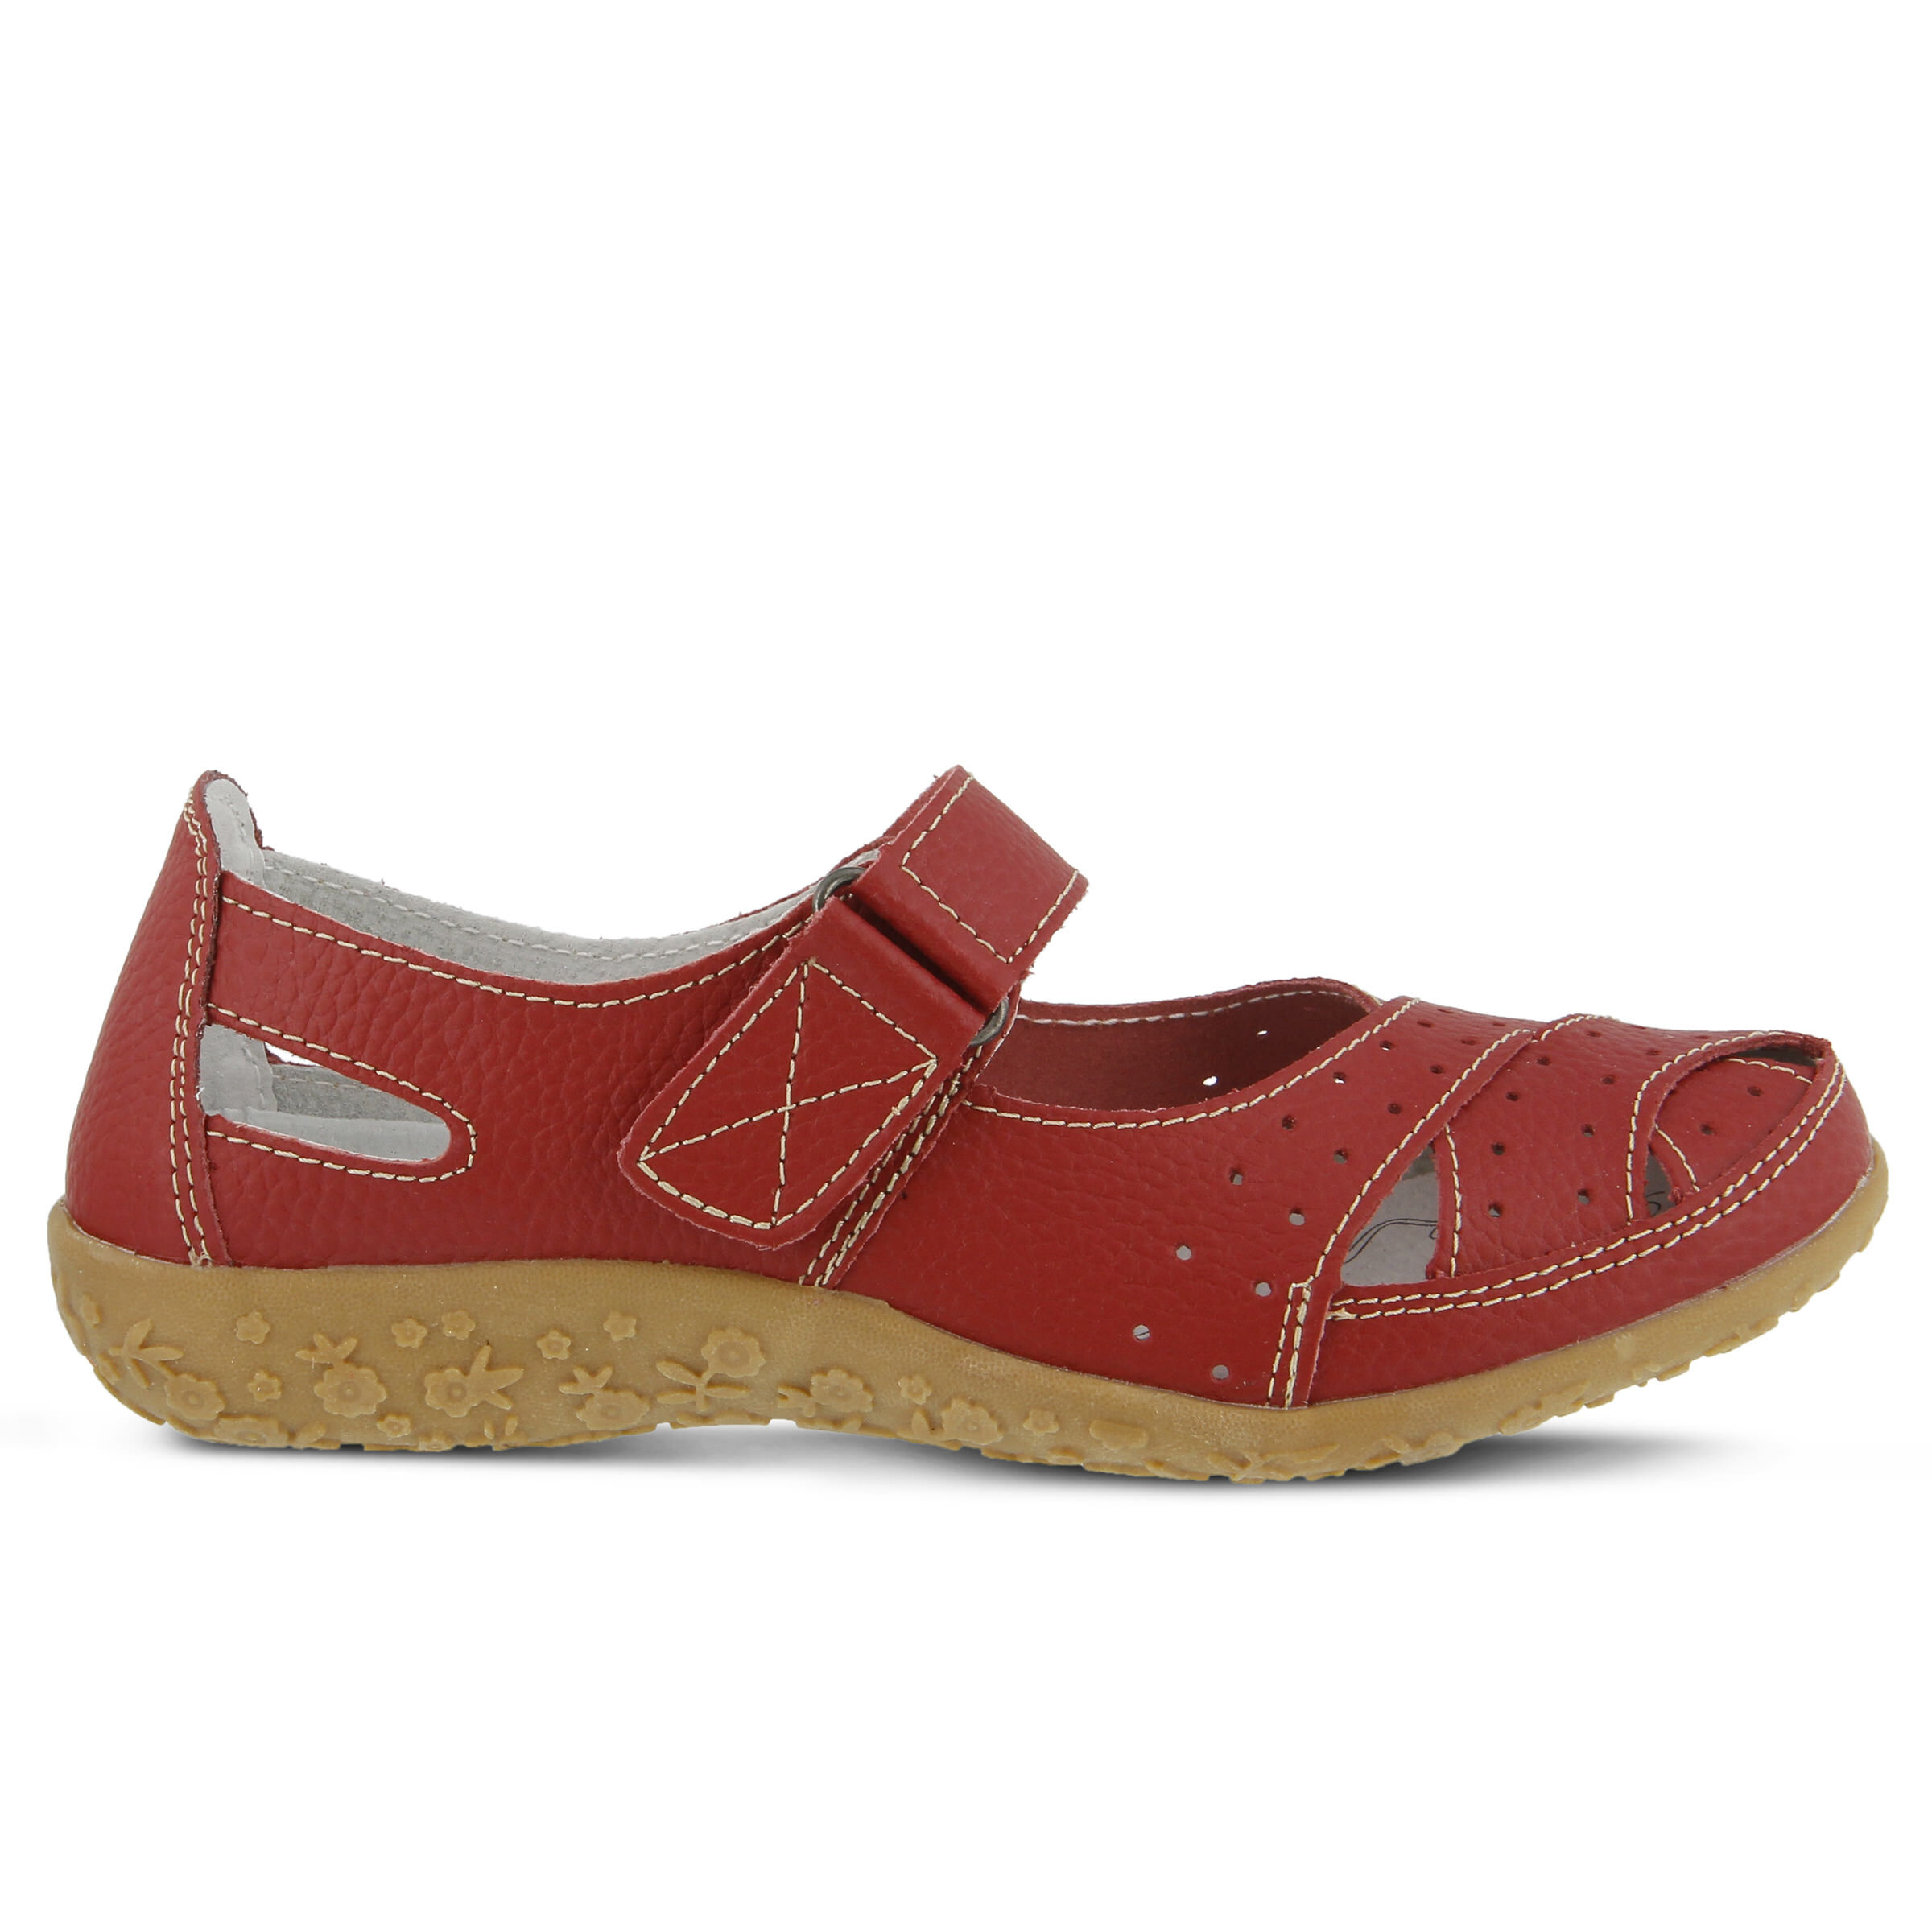 Women's SPRING STEP Streetwise Shoes Red